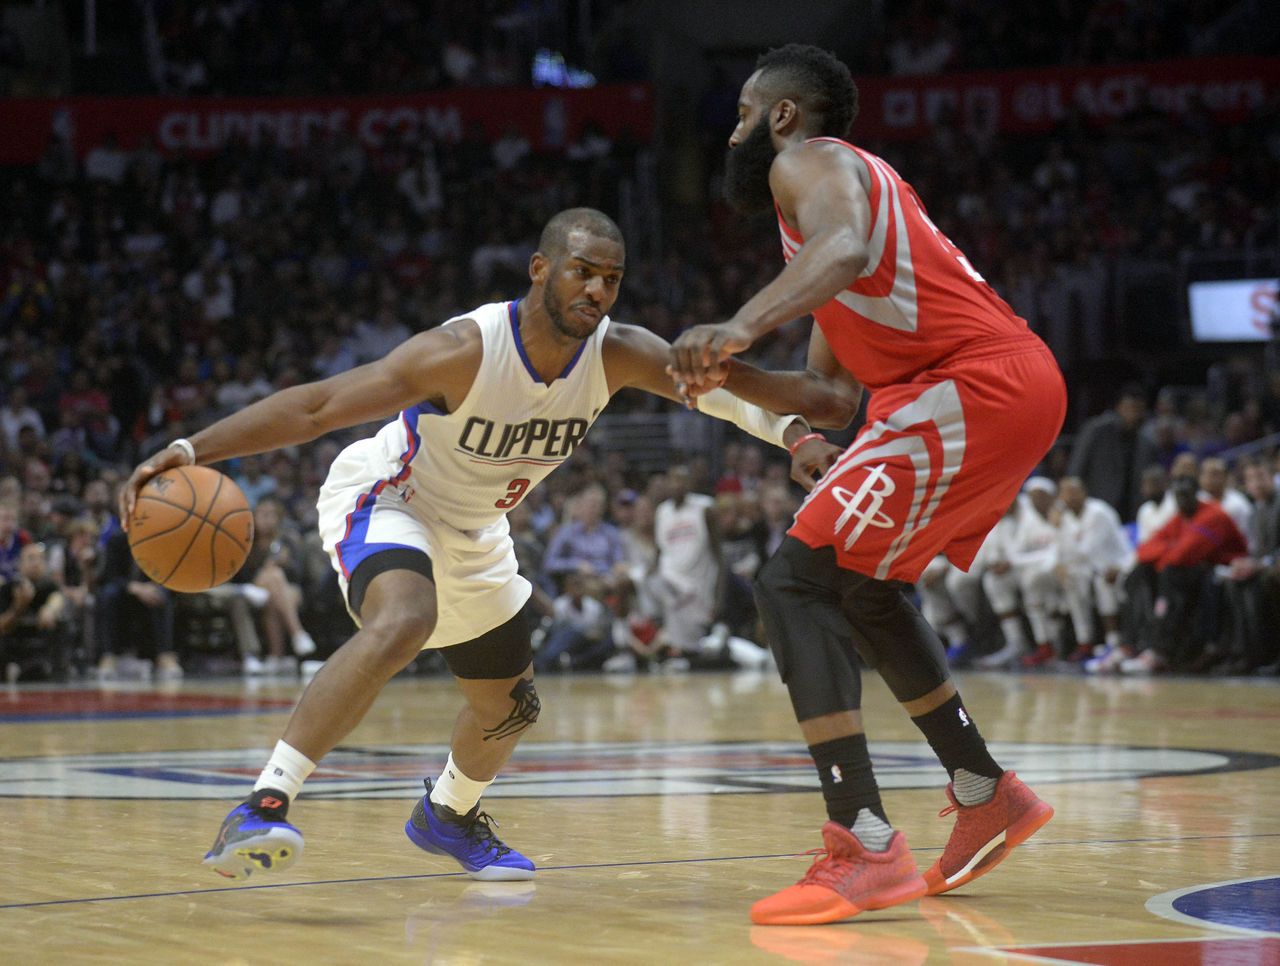 Cropped 2017 04 11t053924z 622534032 nocid rtrmadp 3 nba houston rockets at los angeles clippers